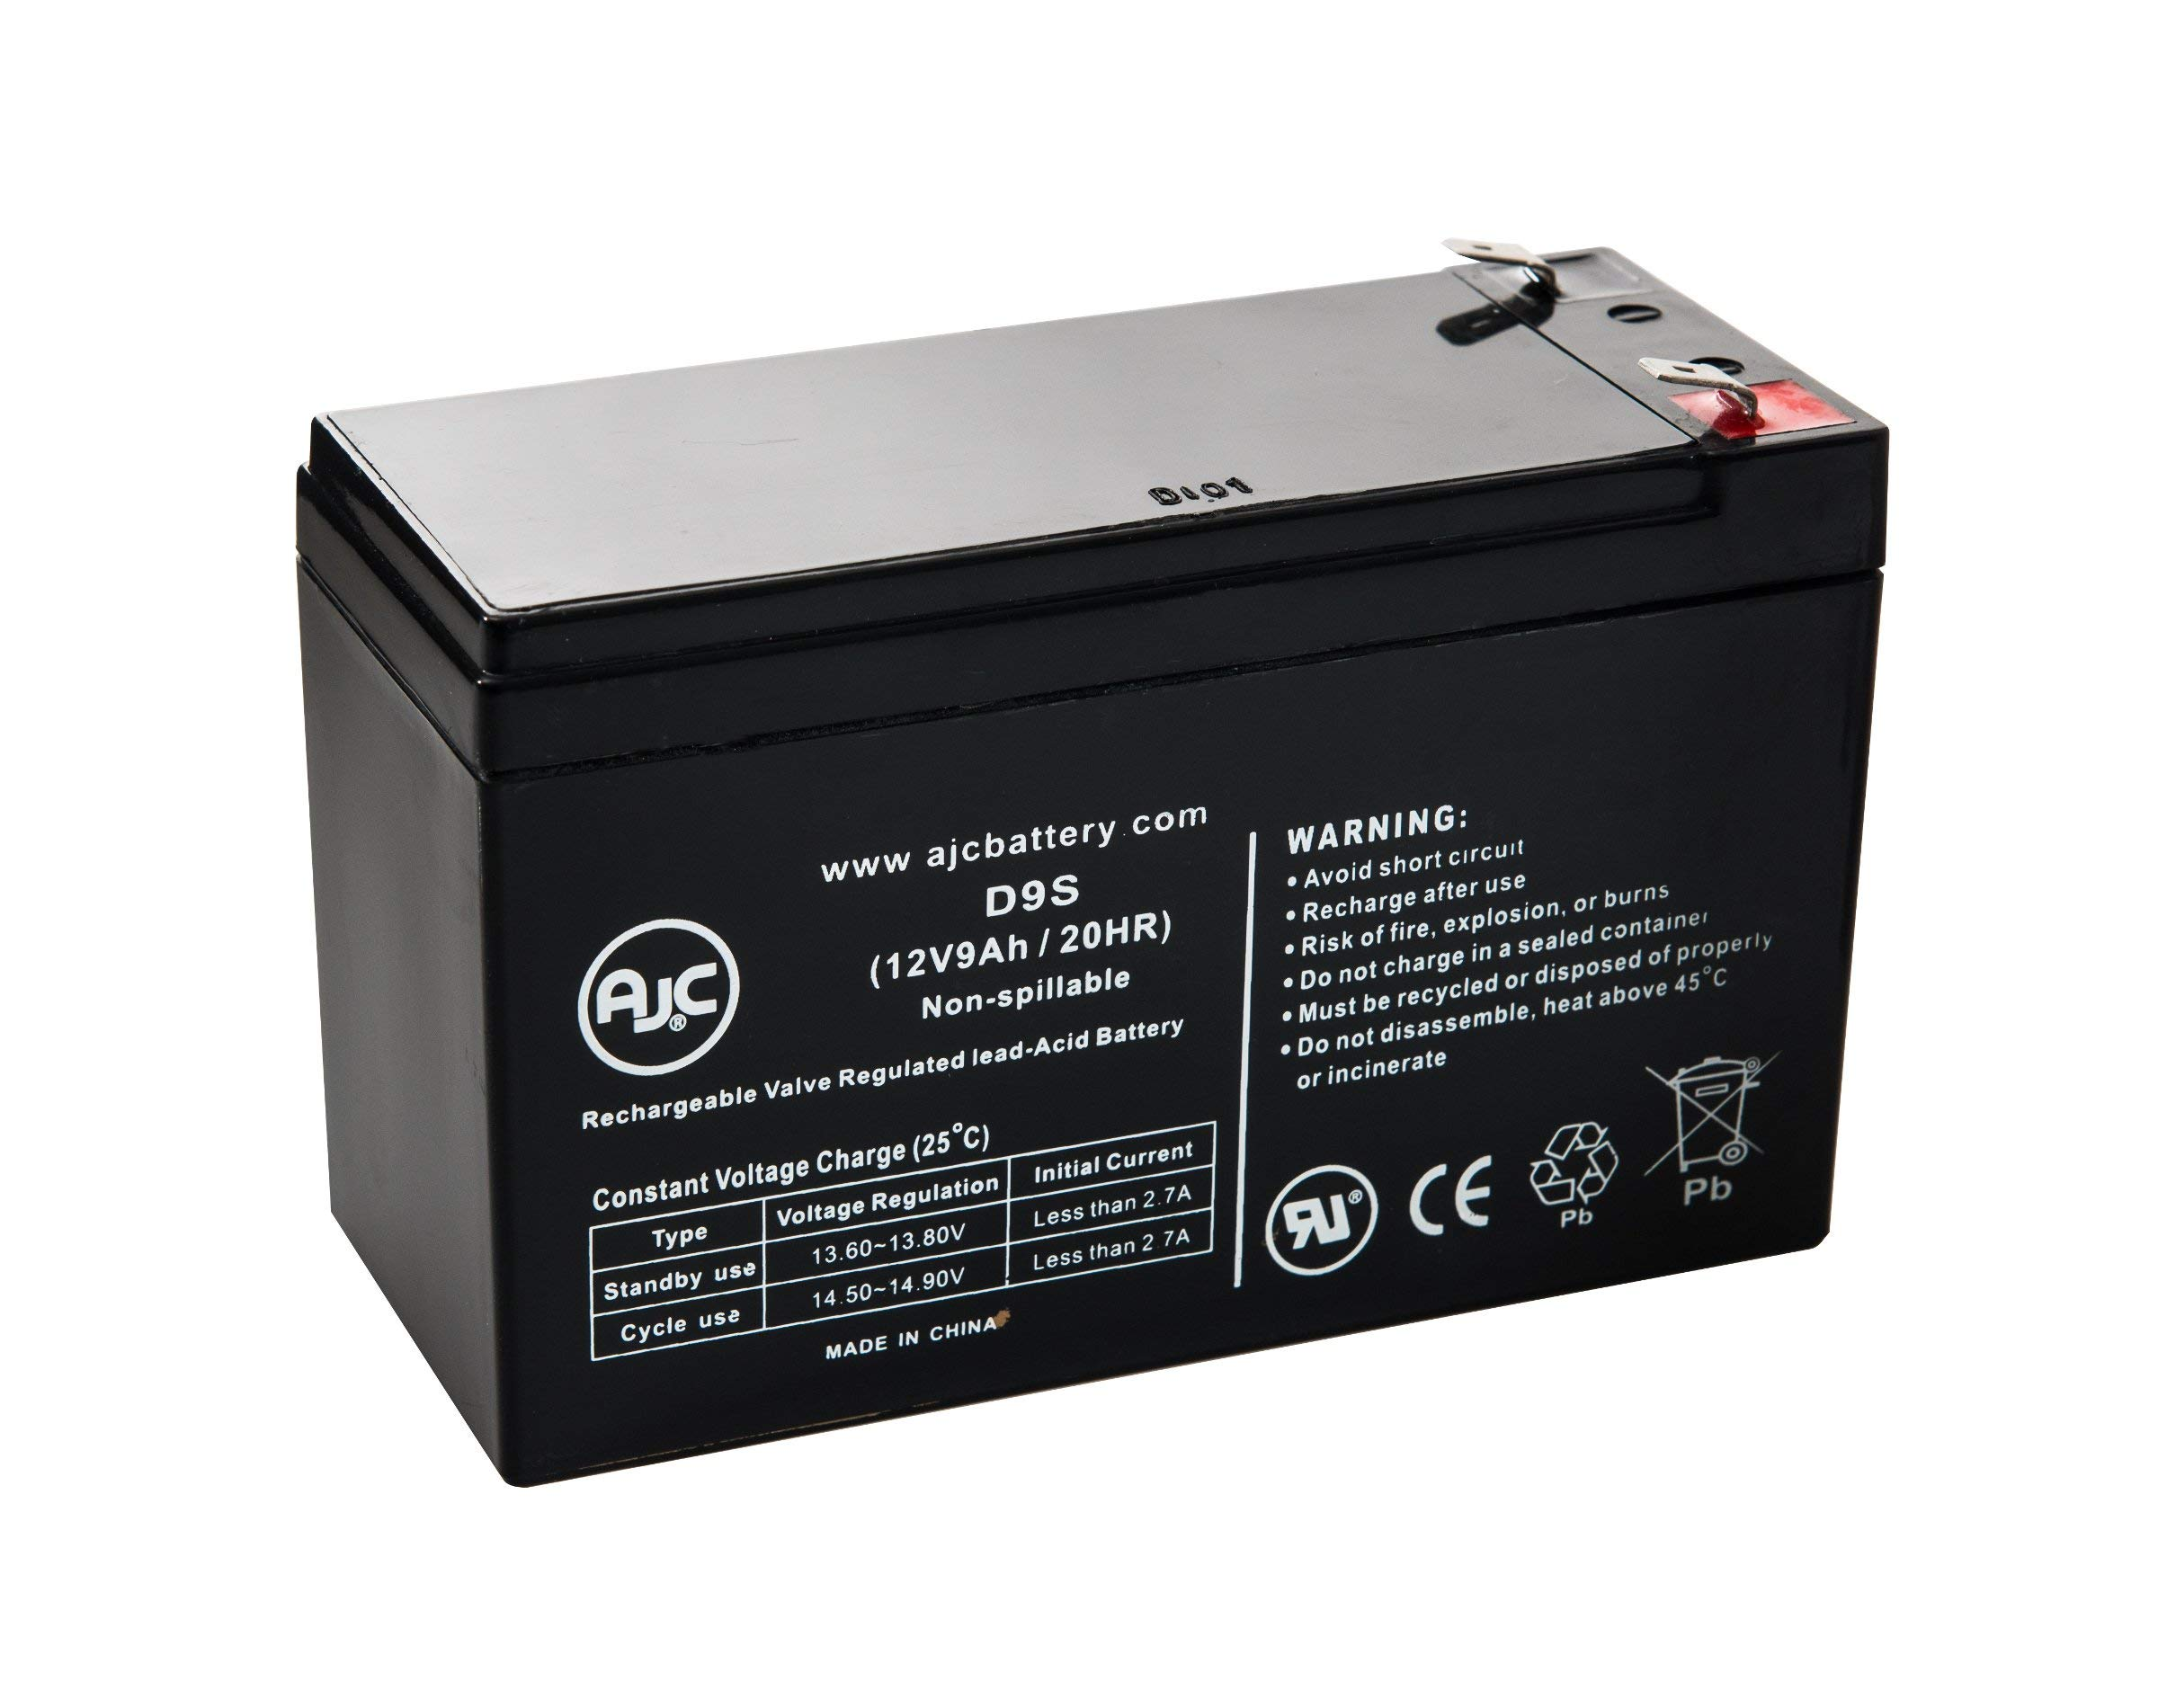 Yuasa NPW45-12 12V 9Ah UPS Battery - This is an AJC Brand Replacement